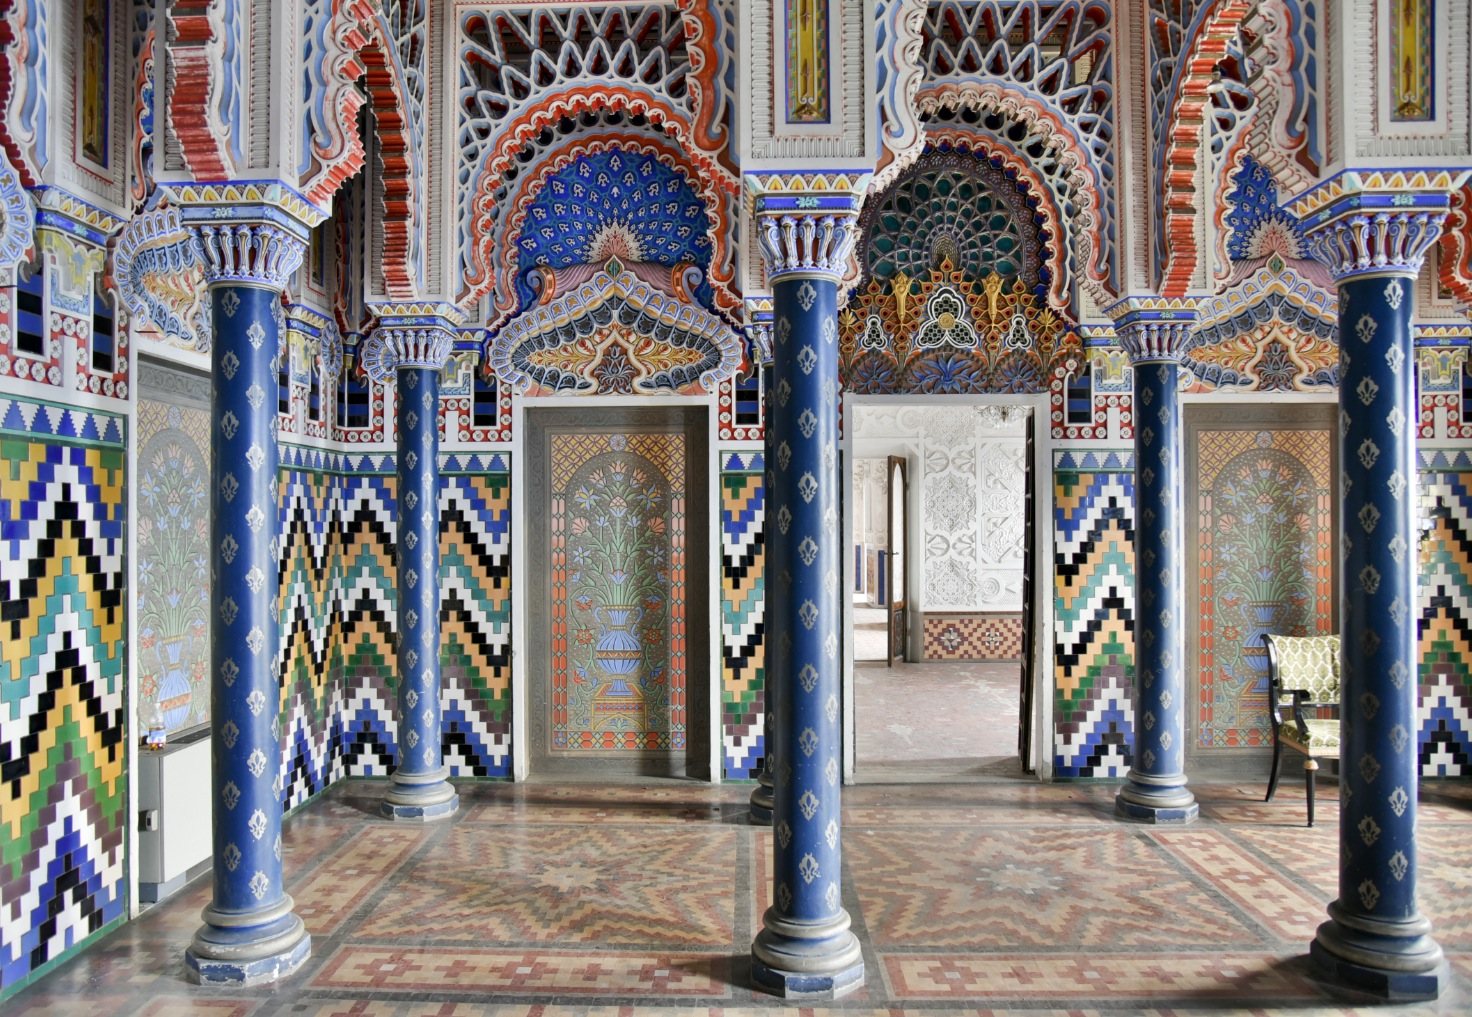 The Castle of Sammezzano May Be the Most Psychedelic Building in the